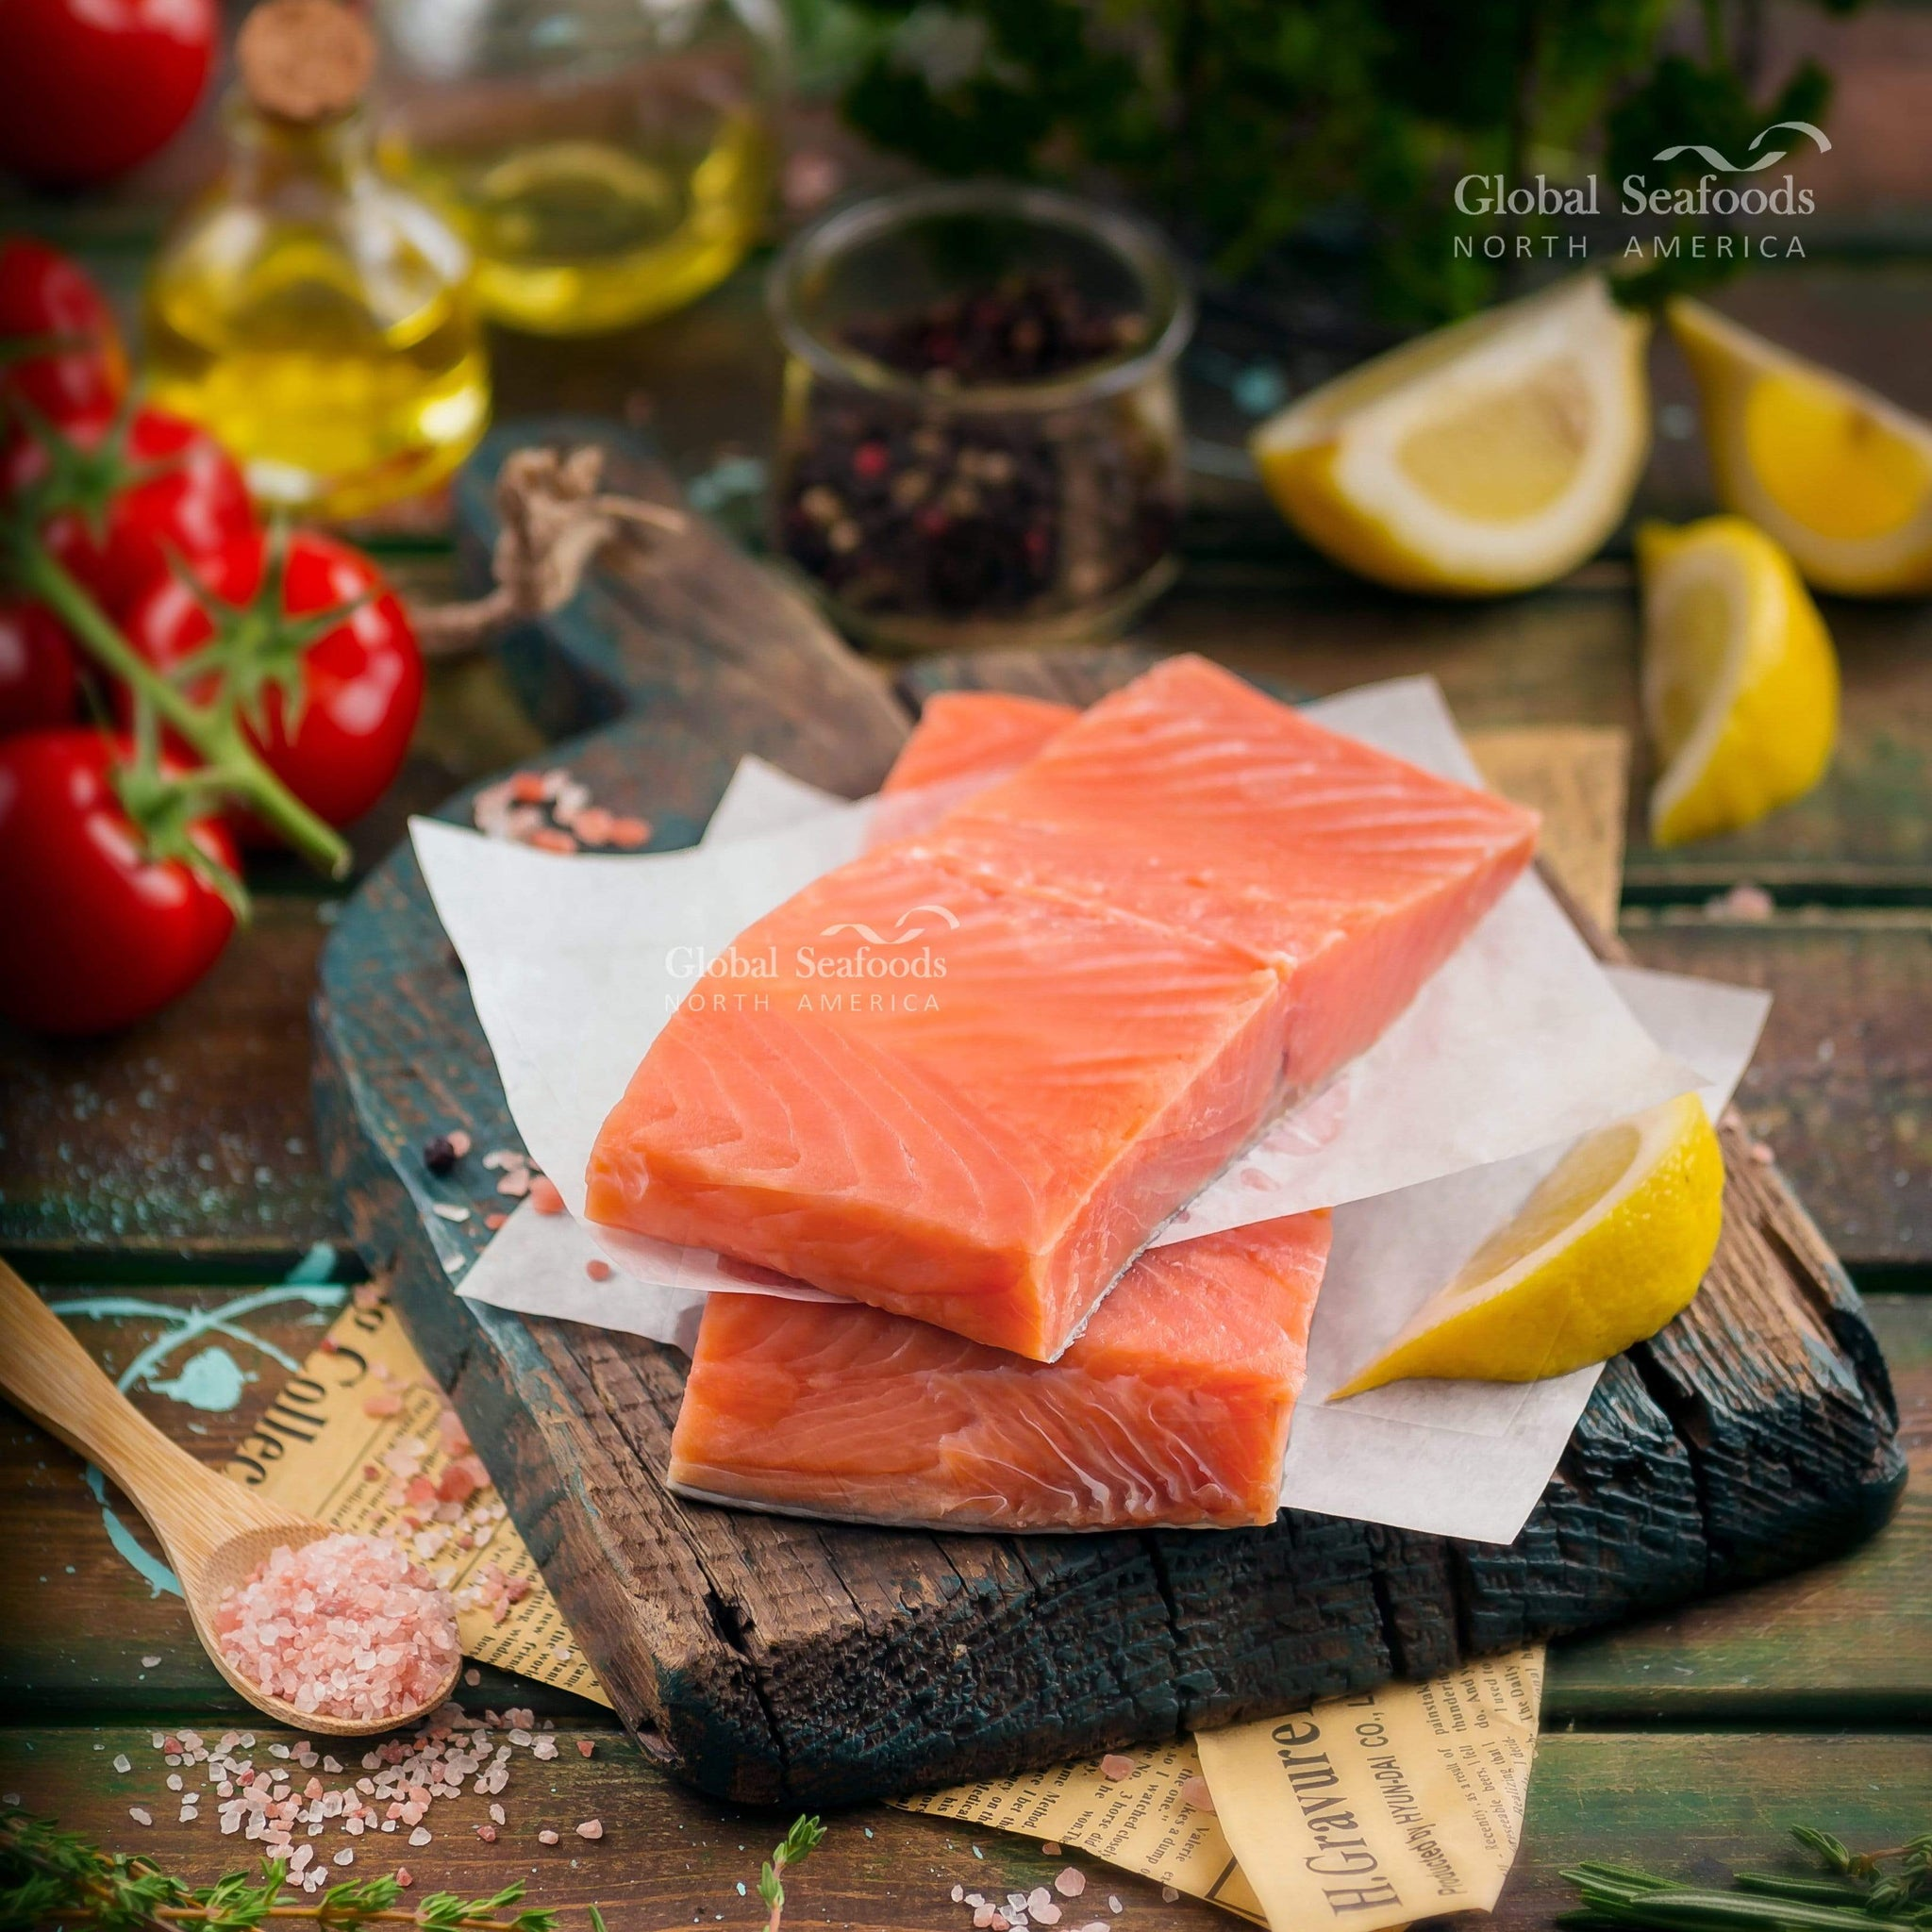 globalseafoods Fish Coho (Silver) Salmon 8 oz Portions